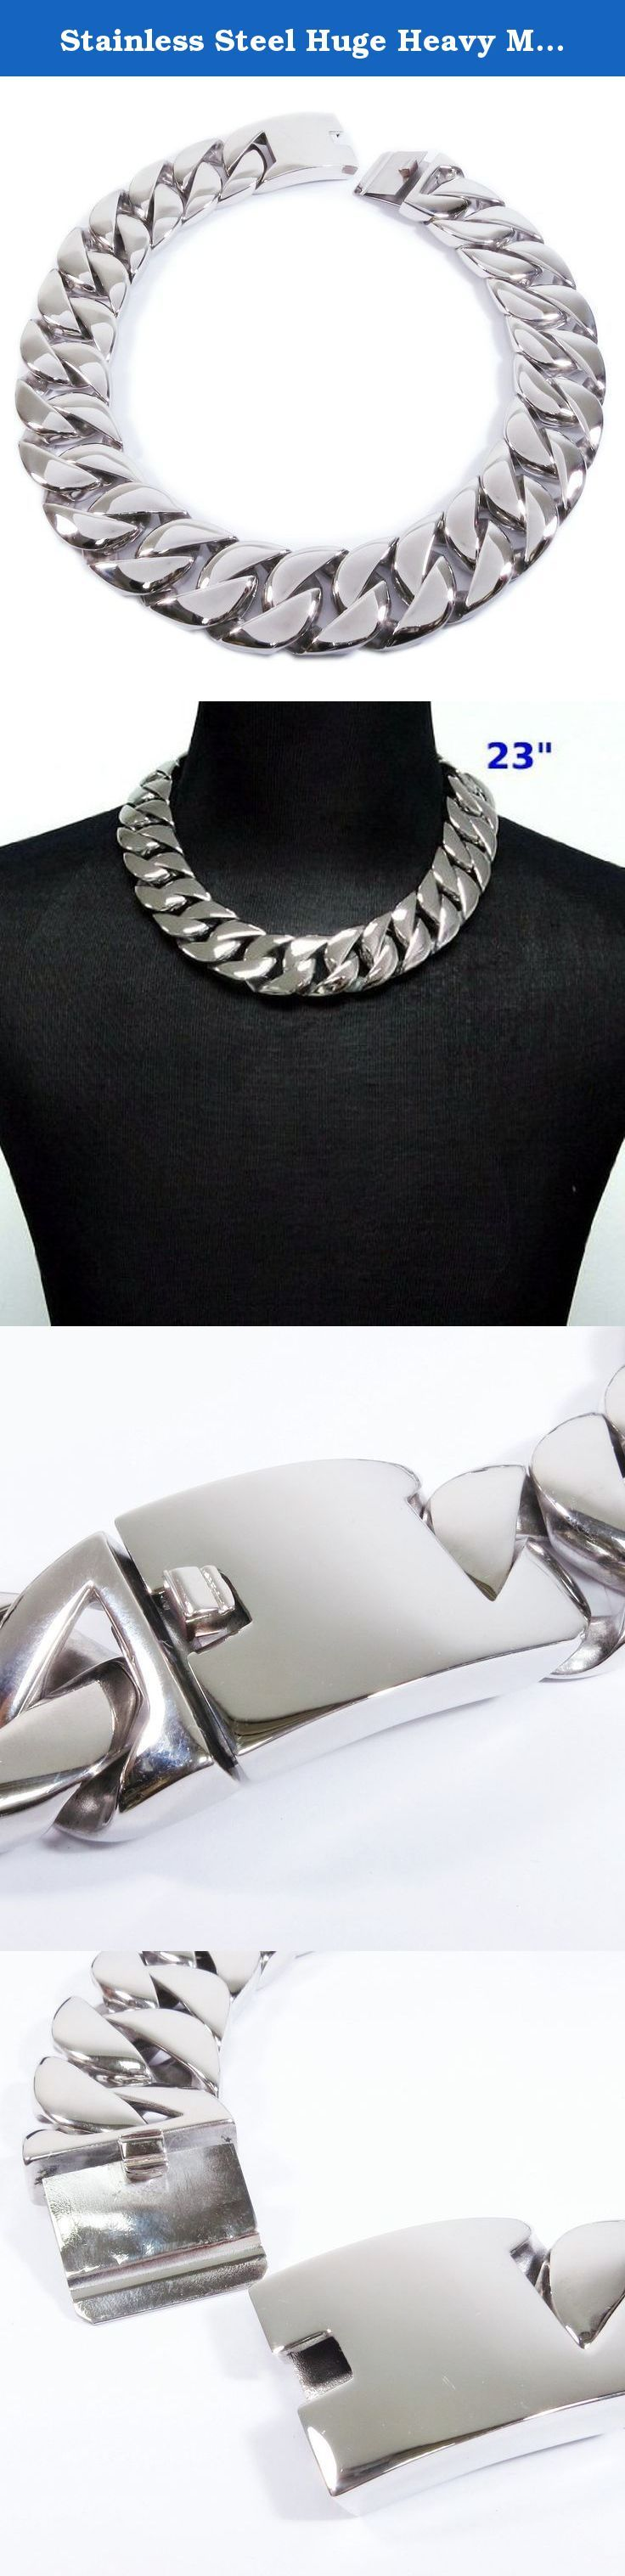 """Stainless Steel Huge Heavy Men Chain Necklace 31mm 28inch. One stainless steel necklace. Highly polished surface curb chain design, tongue clasp. 31mm wide. Very heavy, 20"""" chain is 650g, 34.2"""" chain is 1170g. The coin in the pictures is a US quarter dollar for size reference only and not included. ** Please note that this chain is wide and heavy so order only if you want real wide and heavy chain. Thank you."""